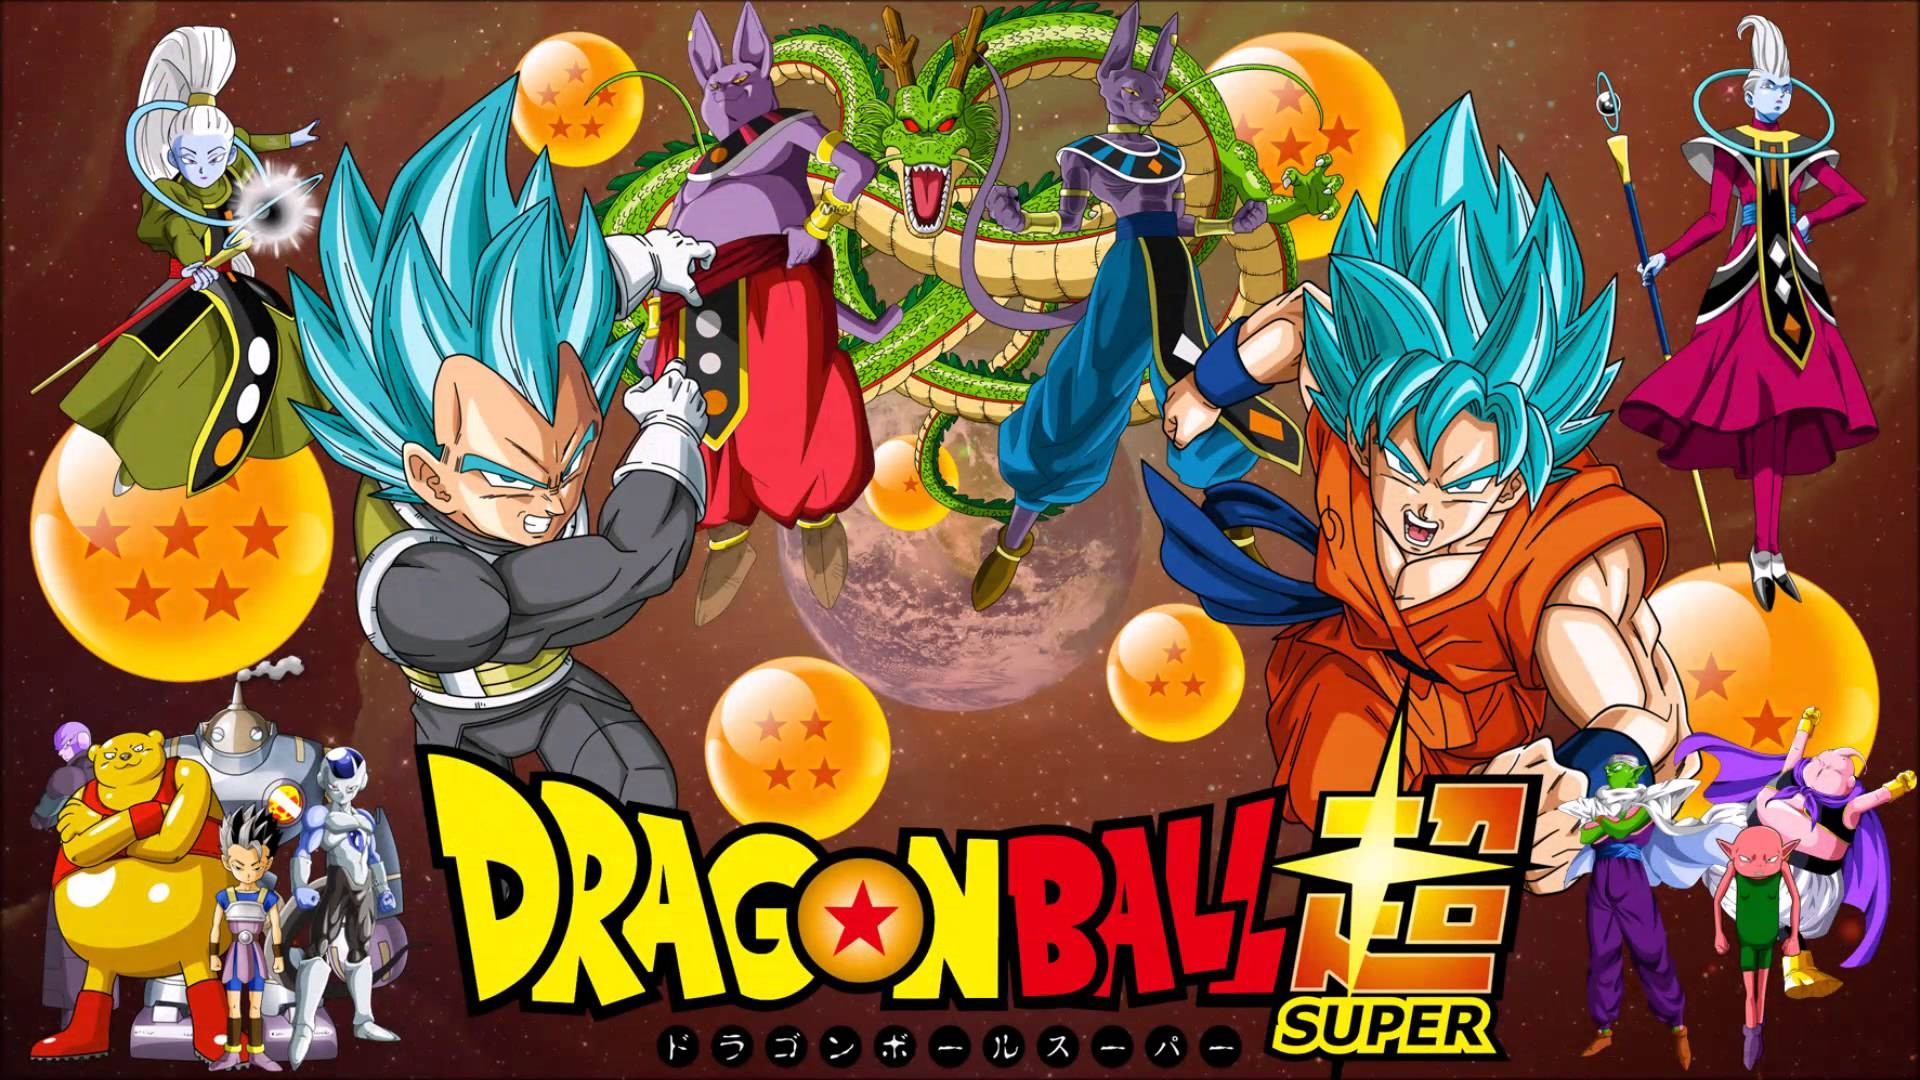 Dragon Ball Super Wallpaper Download Free Awesome Full Hd